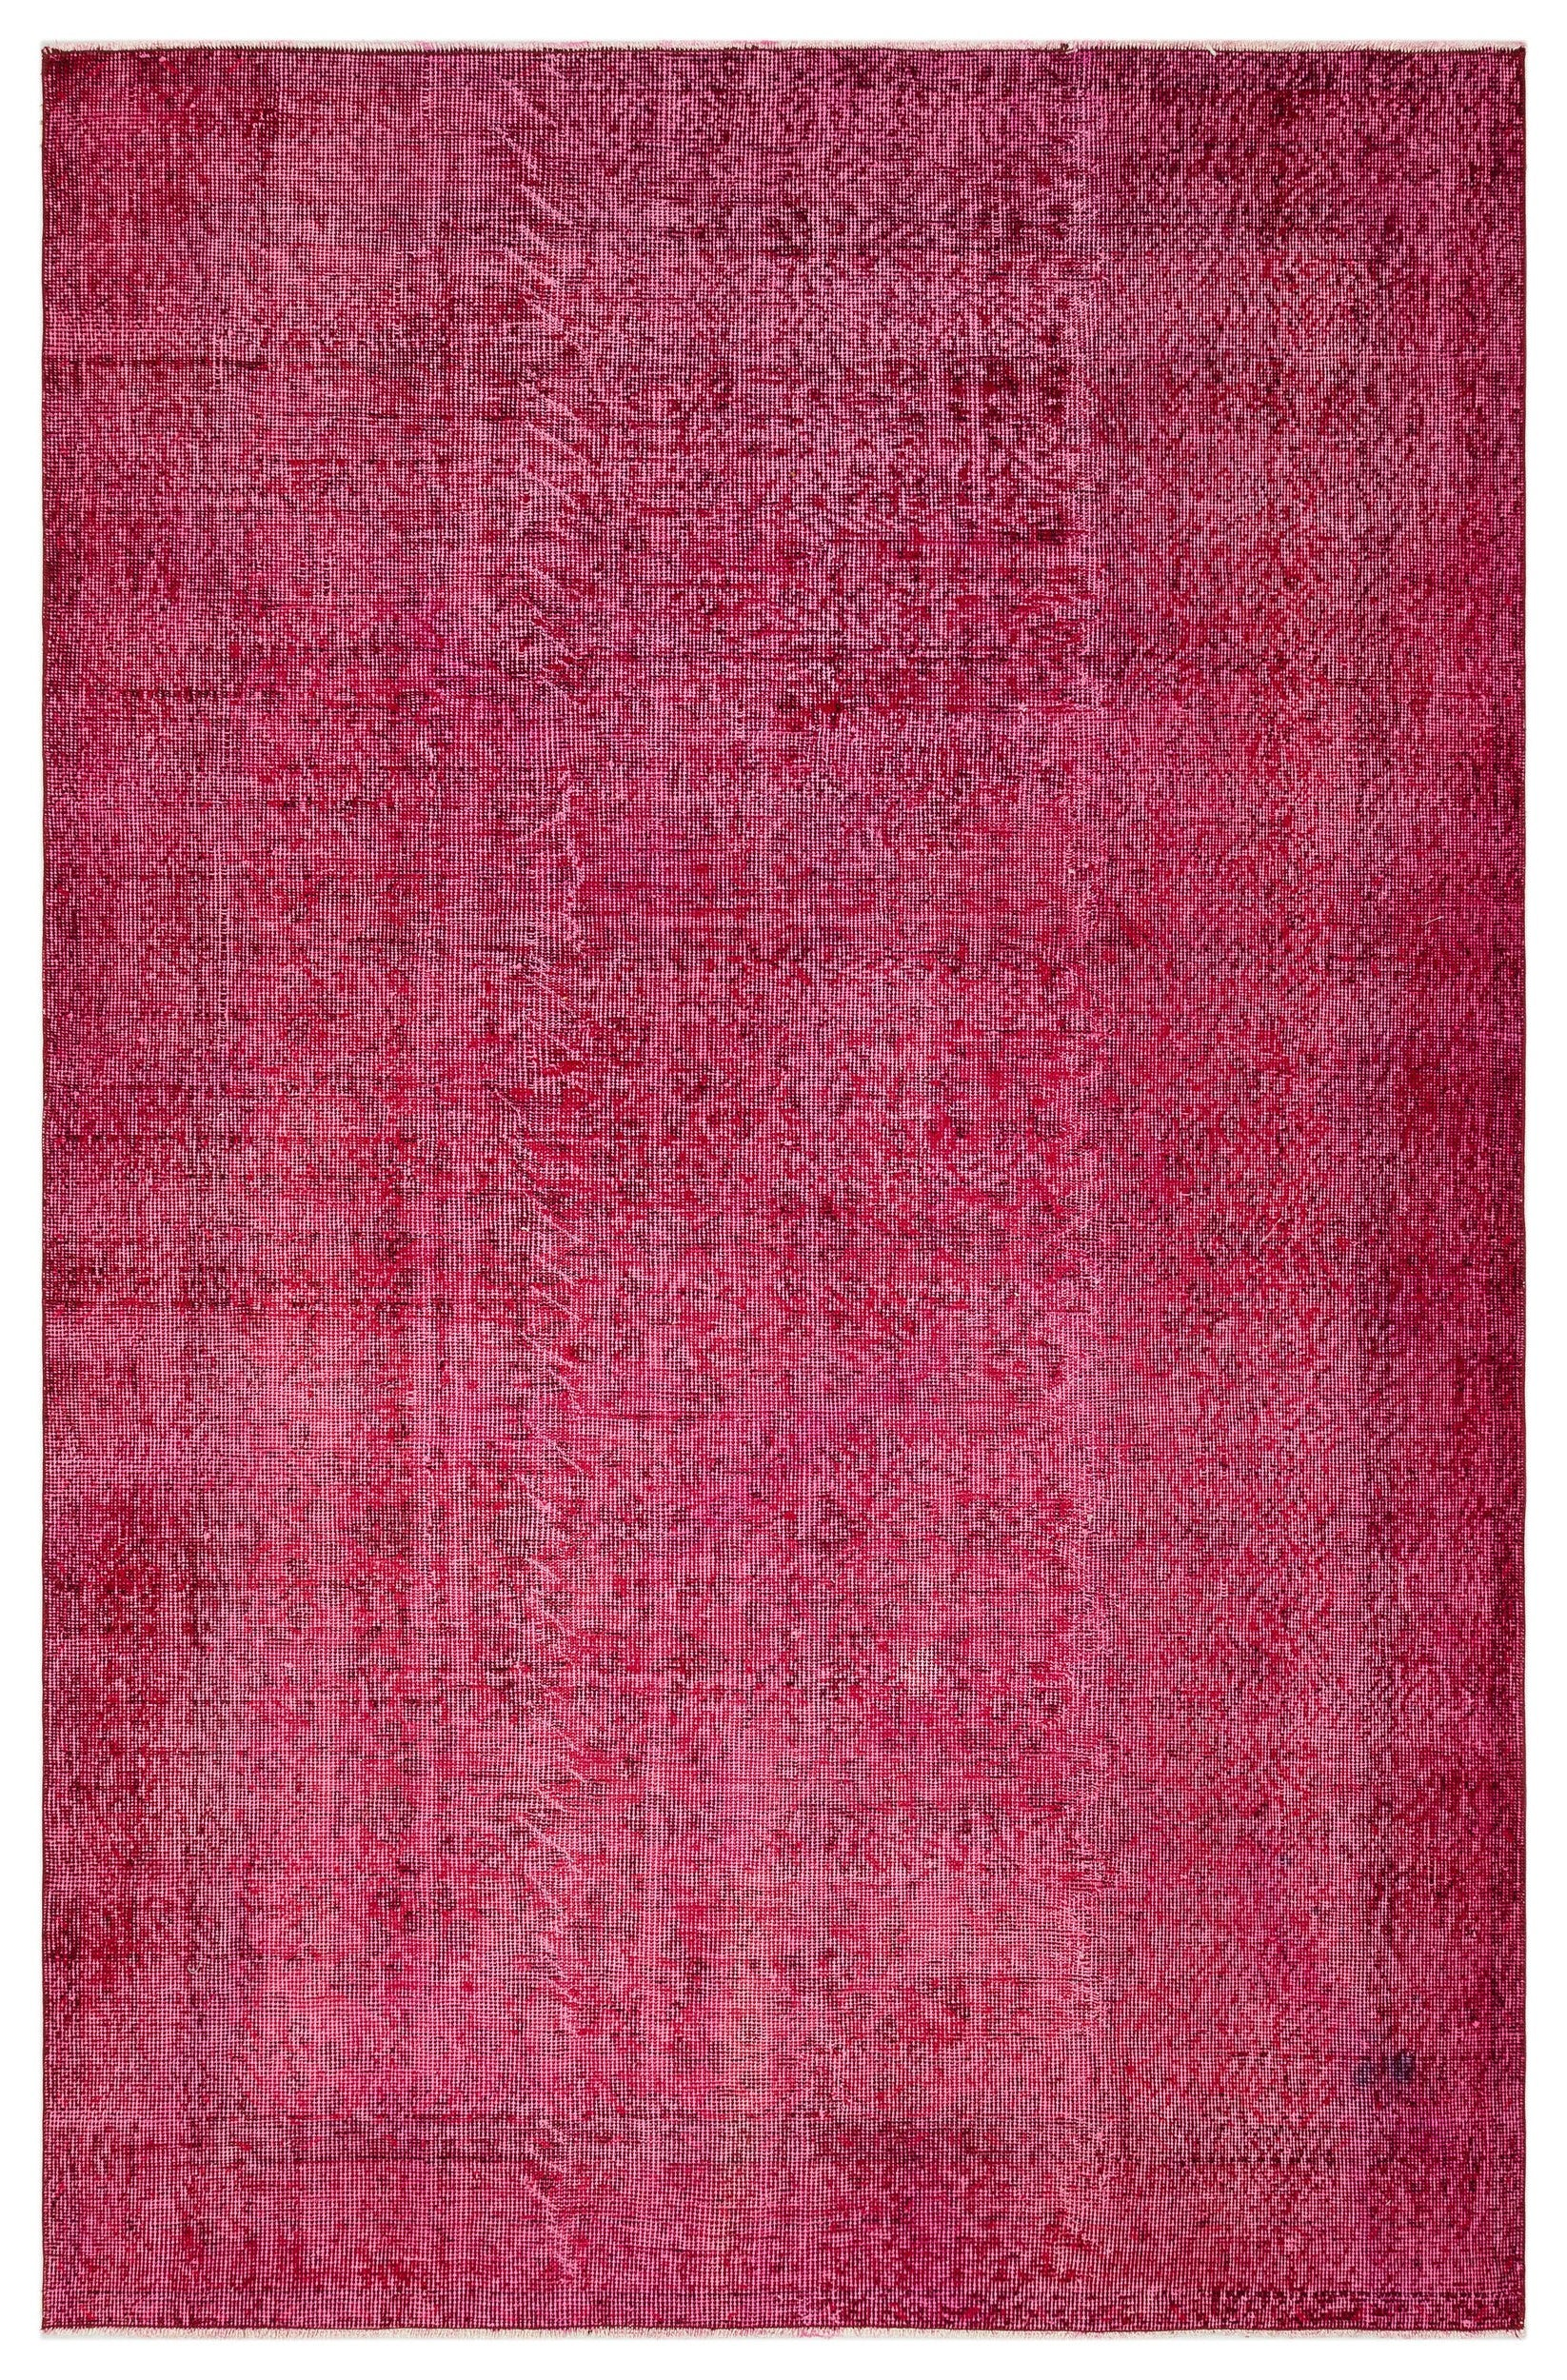 Fuchsia Over Dyed Vintage Rug 5'6'' x 8'7'' ft 168 x 261 cm